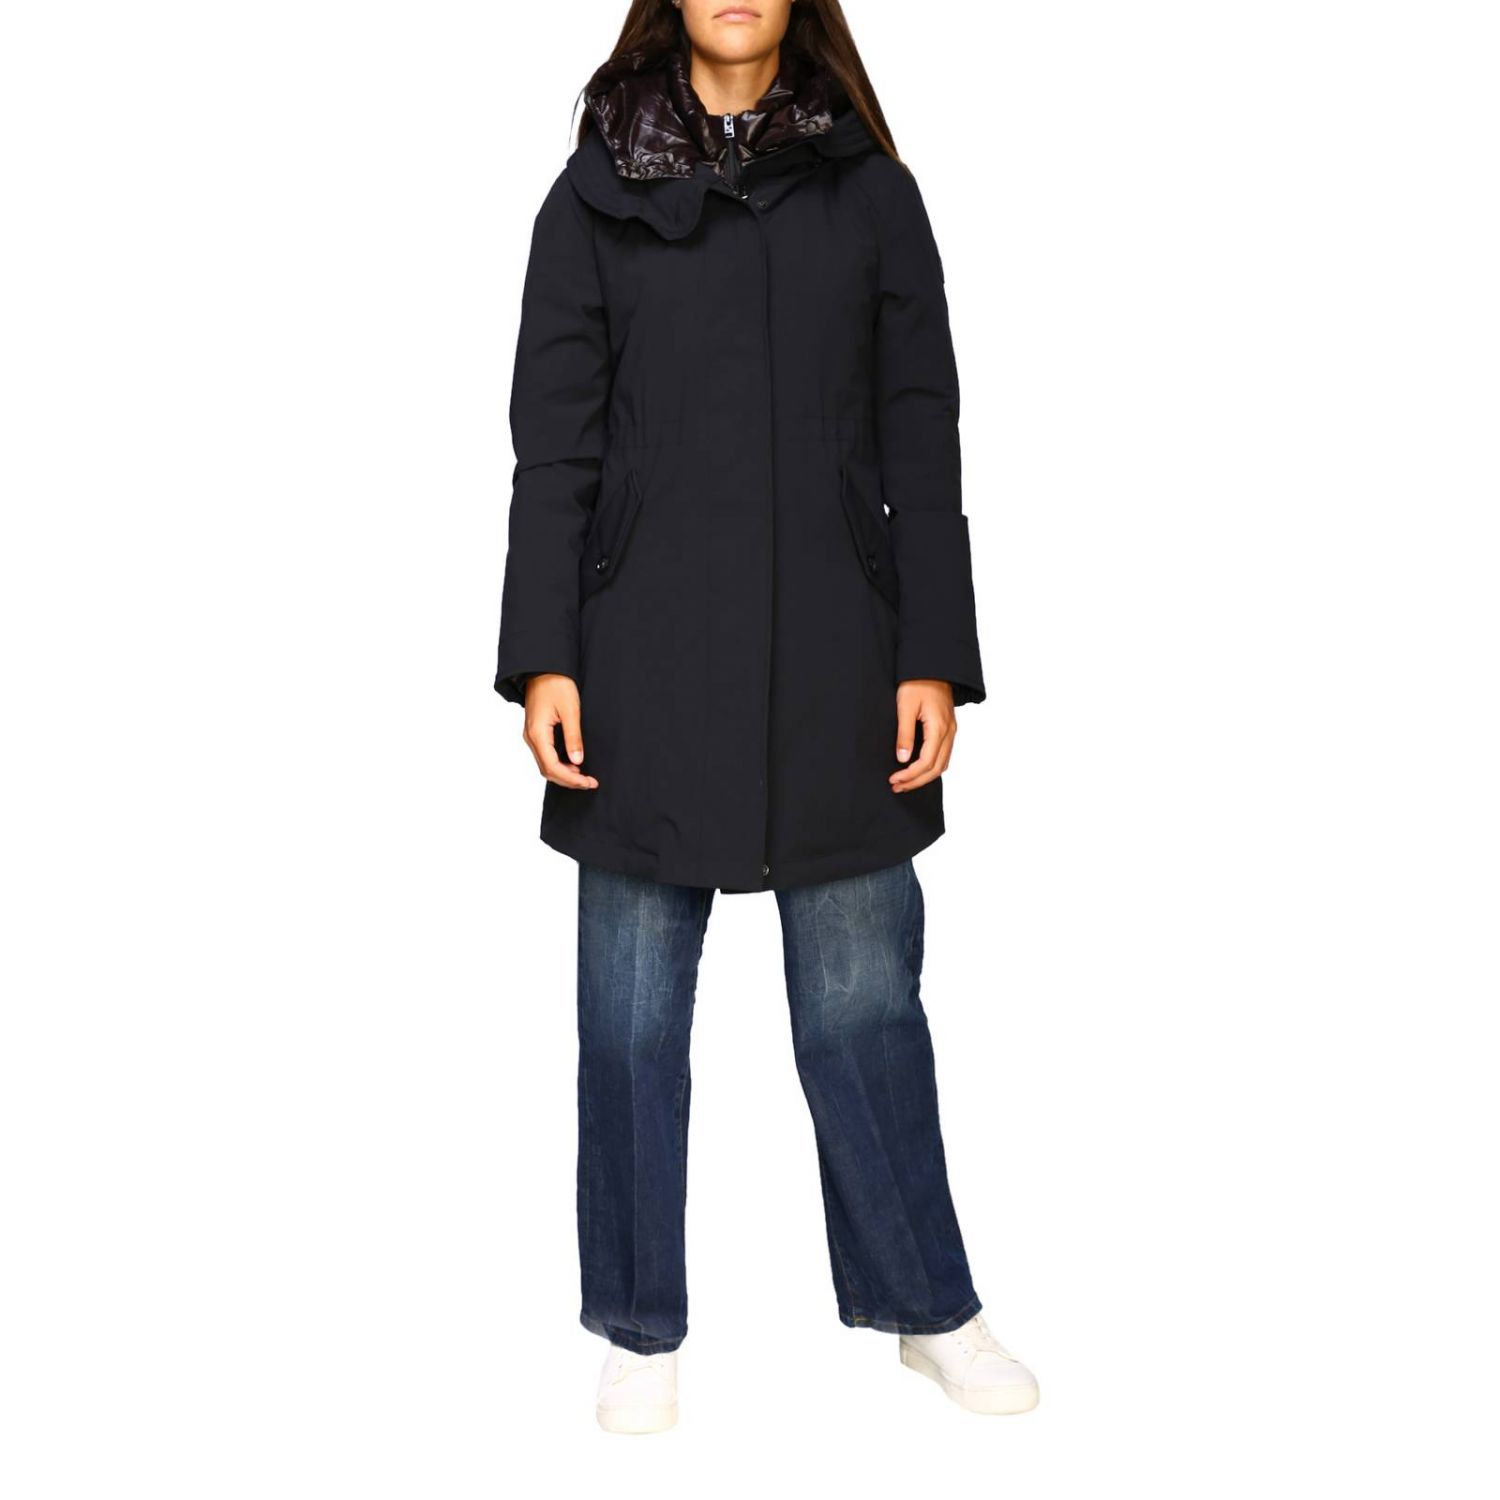 Giacca donna Woolrich nero 1